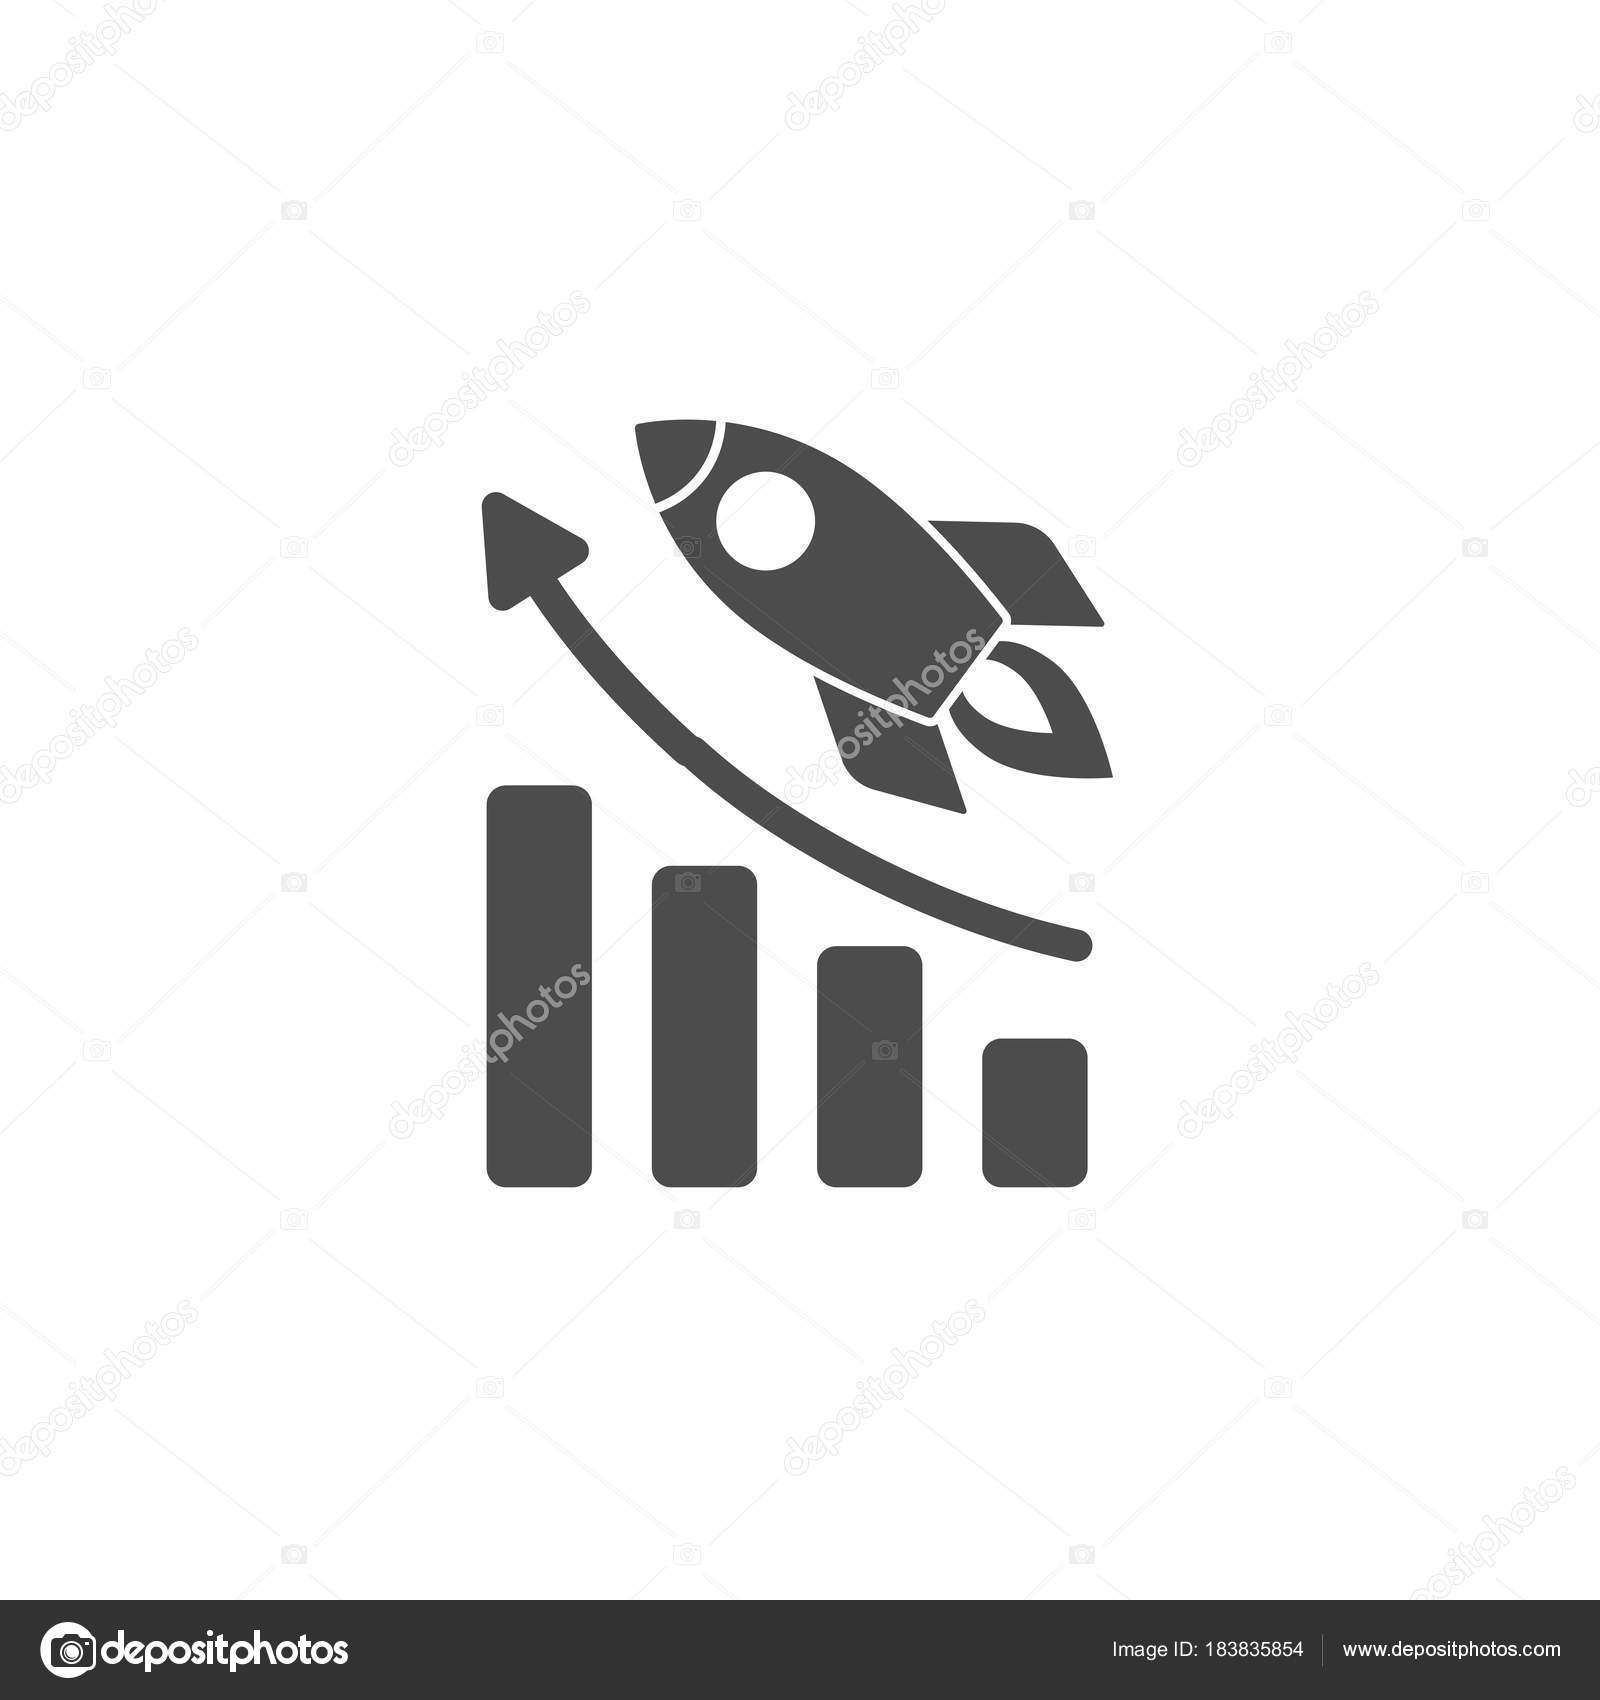 real rocket ship diagram big tex trailer 7 pin wiring black with fire and growth isolated on white flat icon vector illustration flying project start up sign